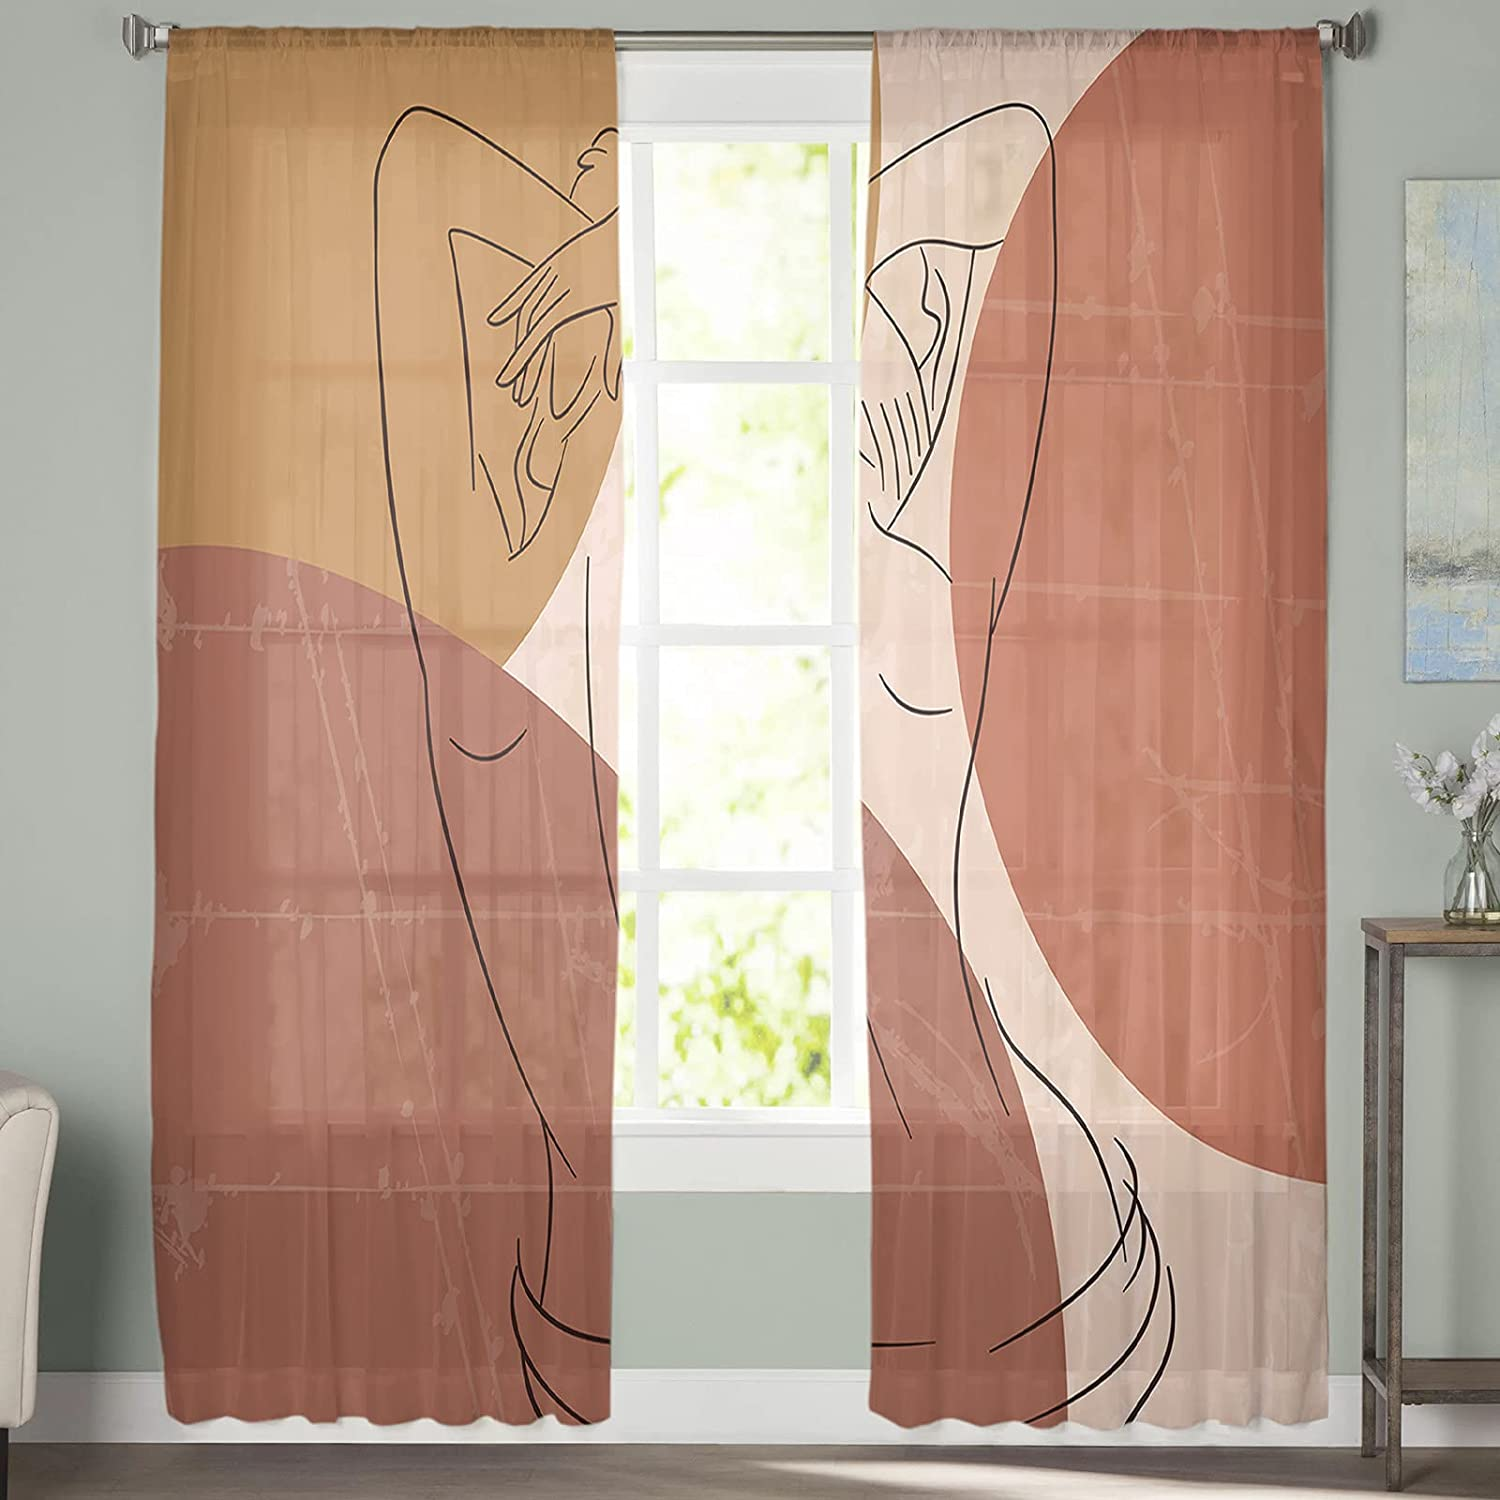 Sales 2 All stores are sold Pieces Window Sheer Curtains T Semi inch 52x84 Abstract